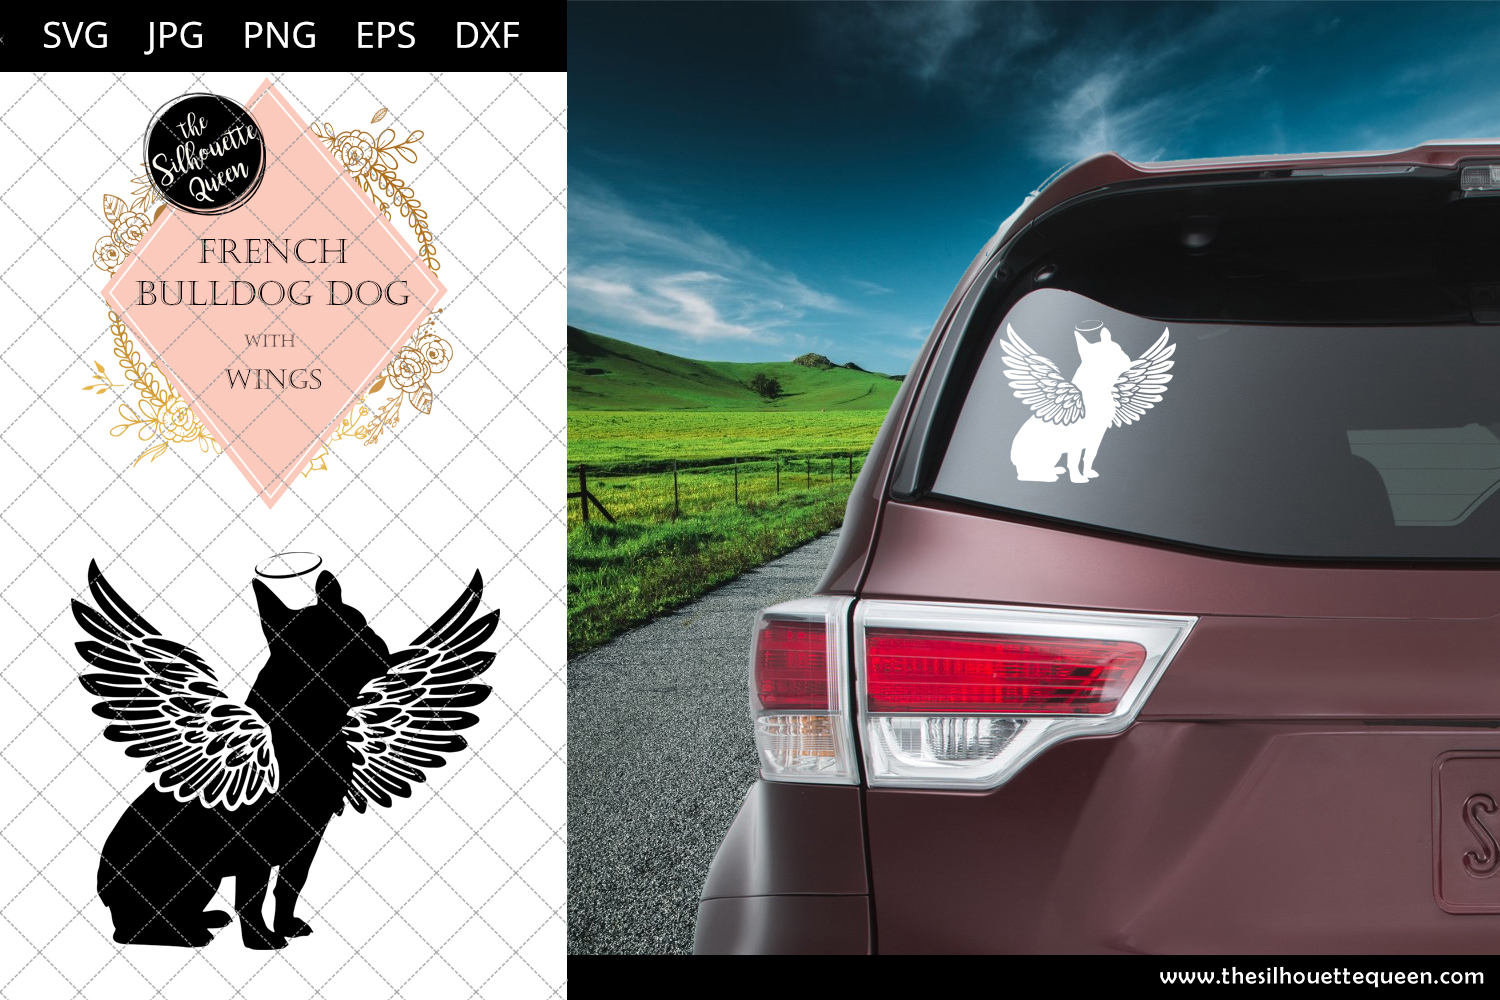 French Bulldog Dog 9 With Wings Graphic By